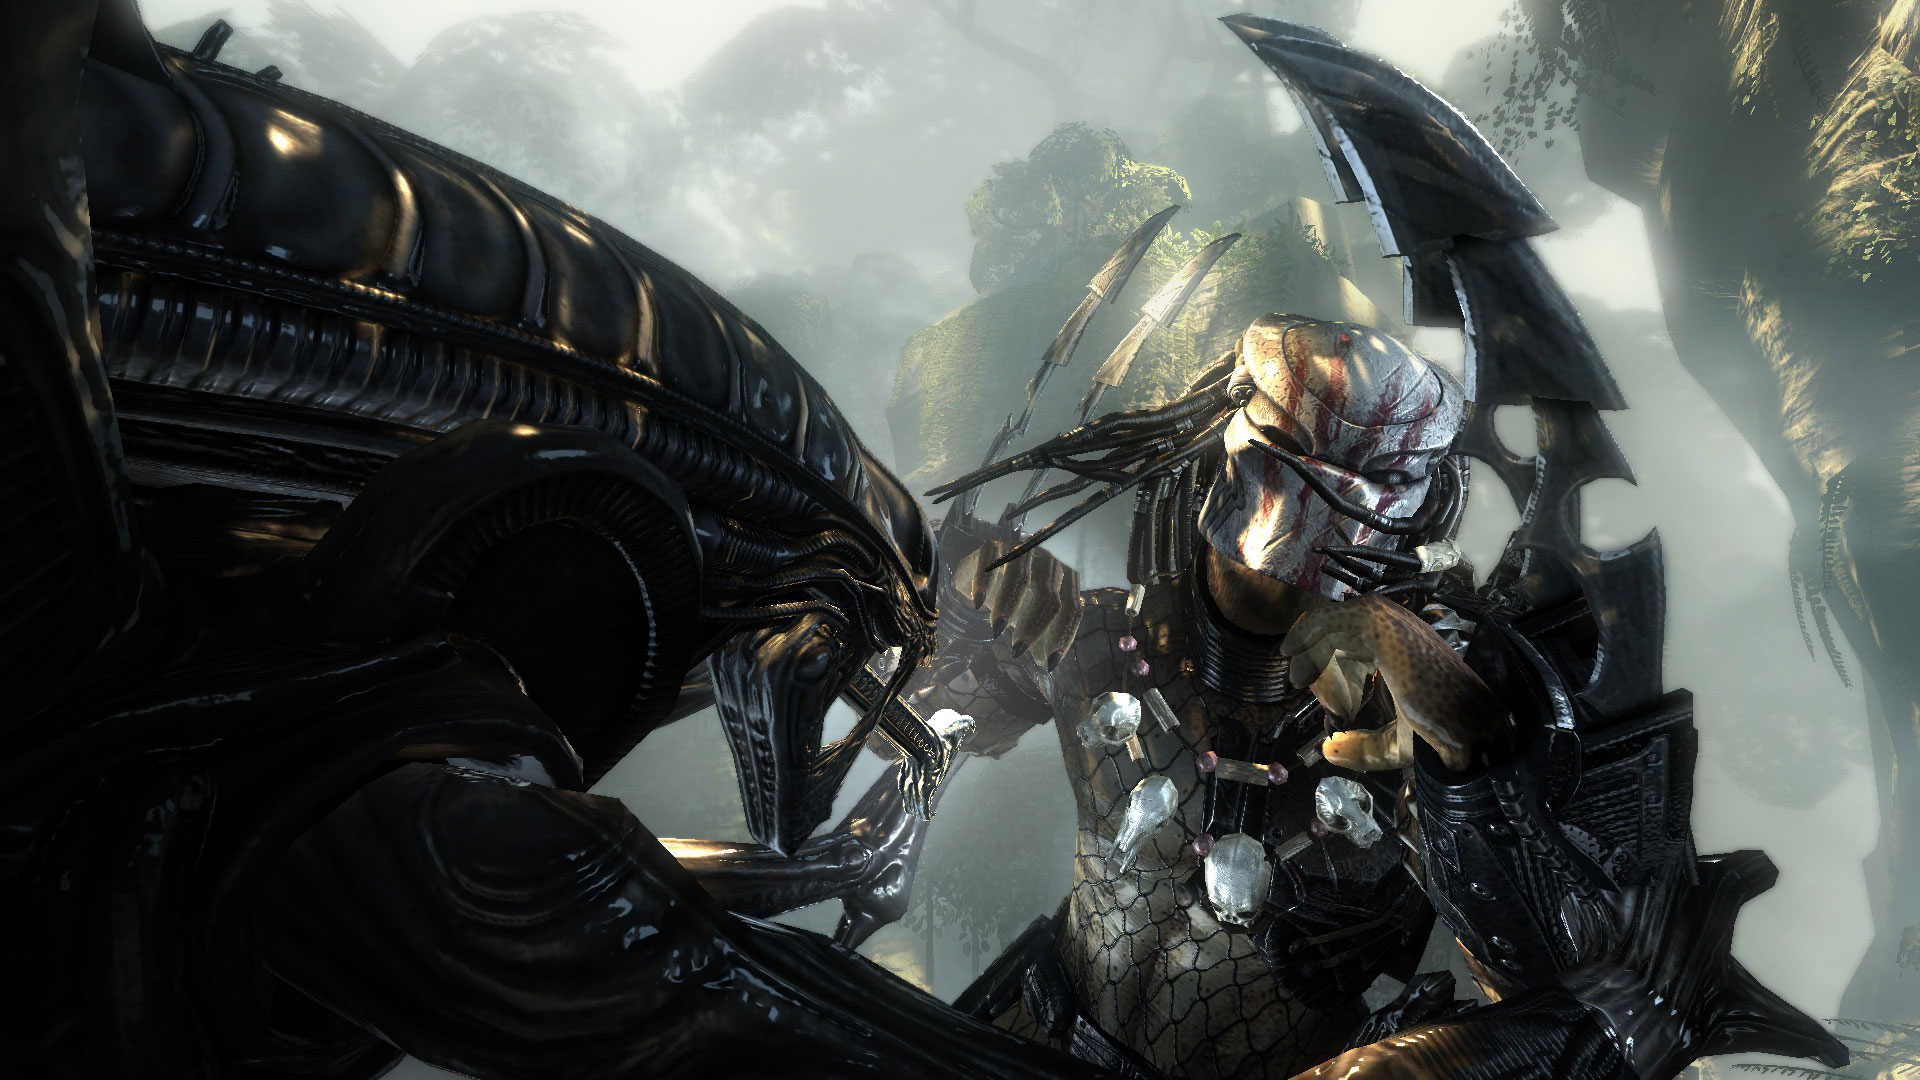 video game aliens vs. predator alien predator battle humans wallpaper